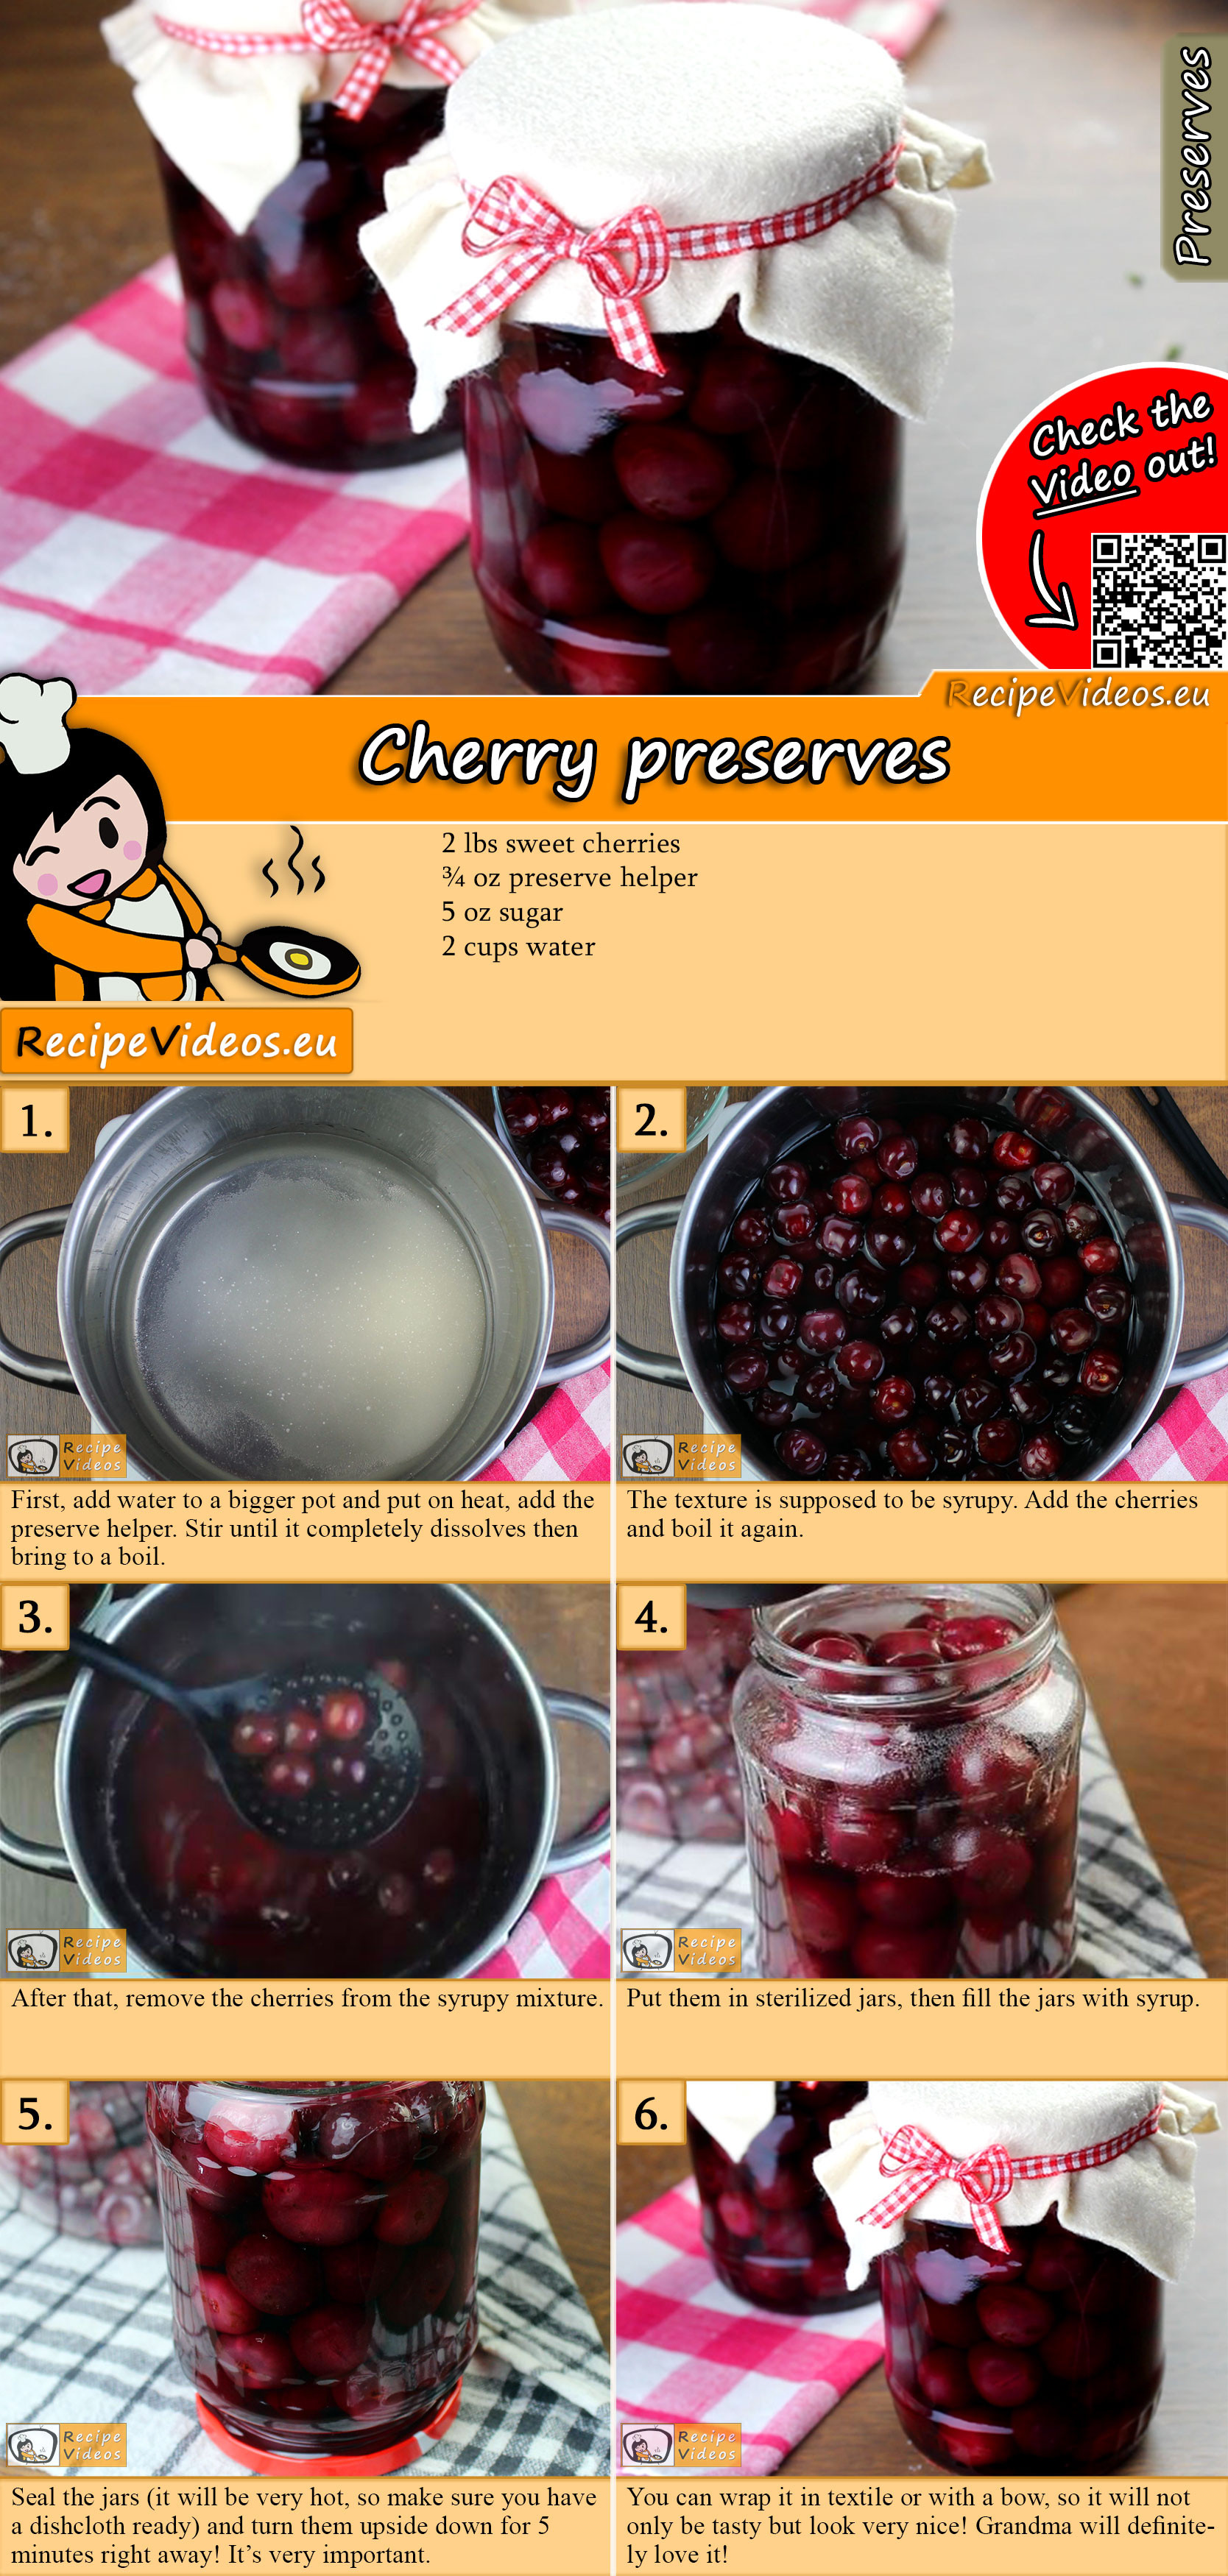 Cherry preserves recipe with video